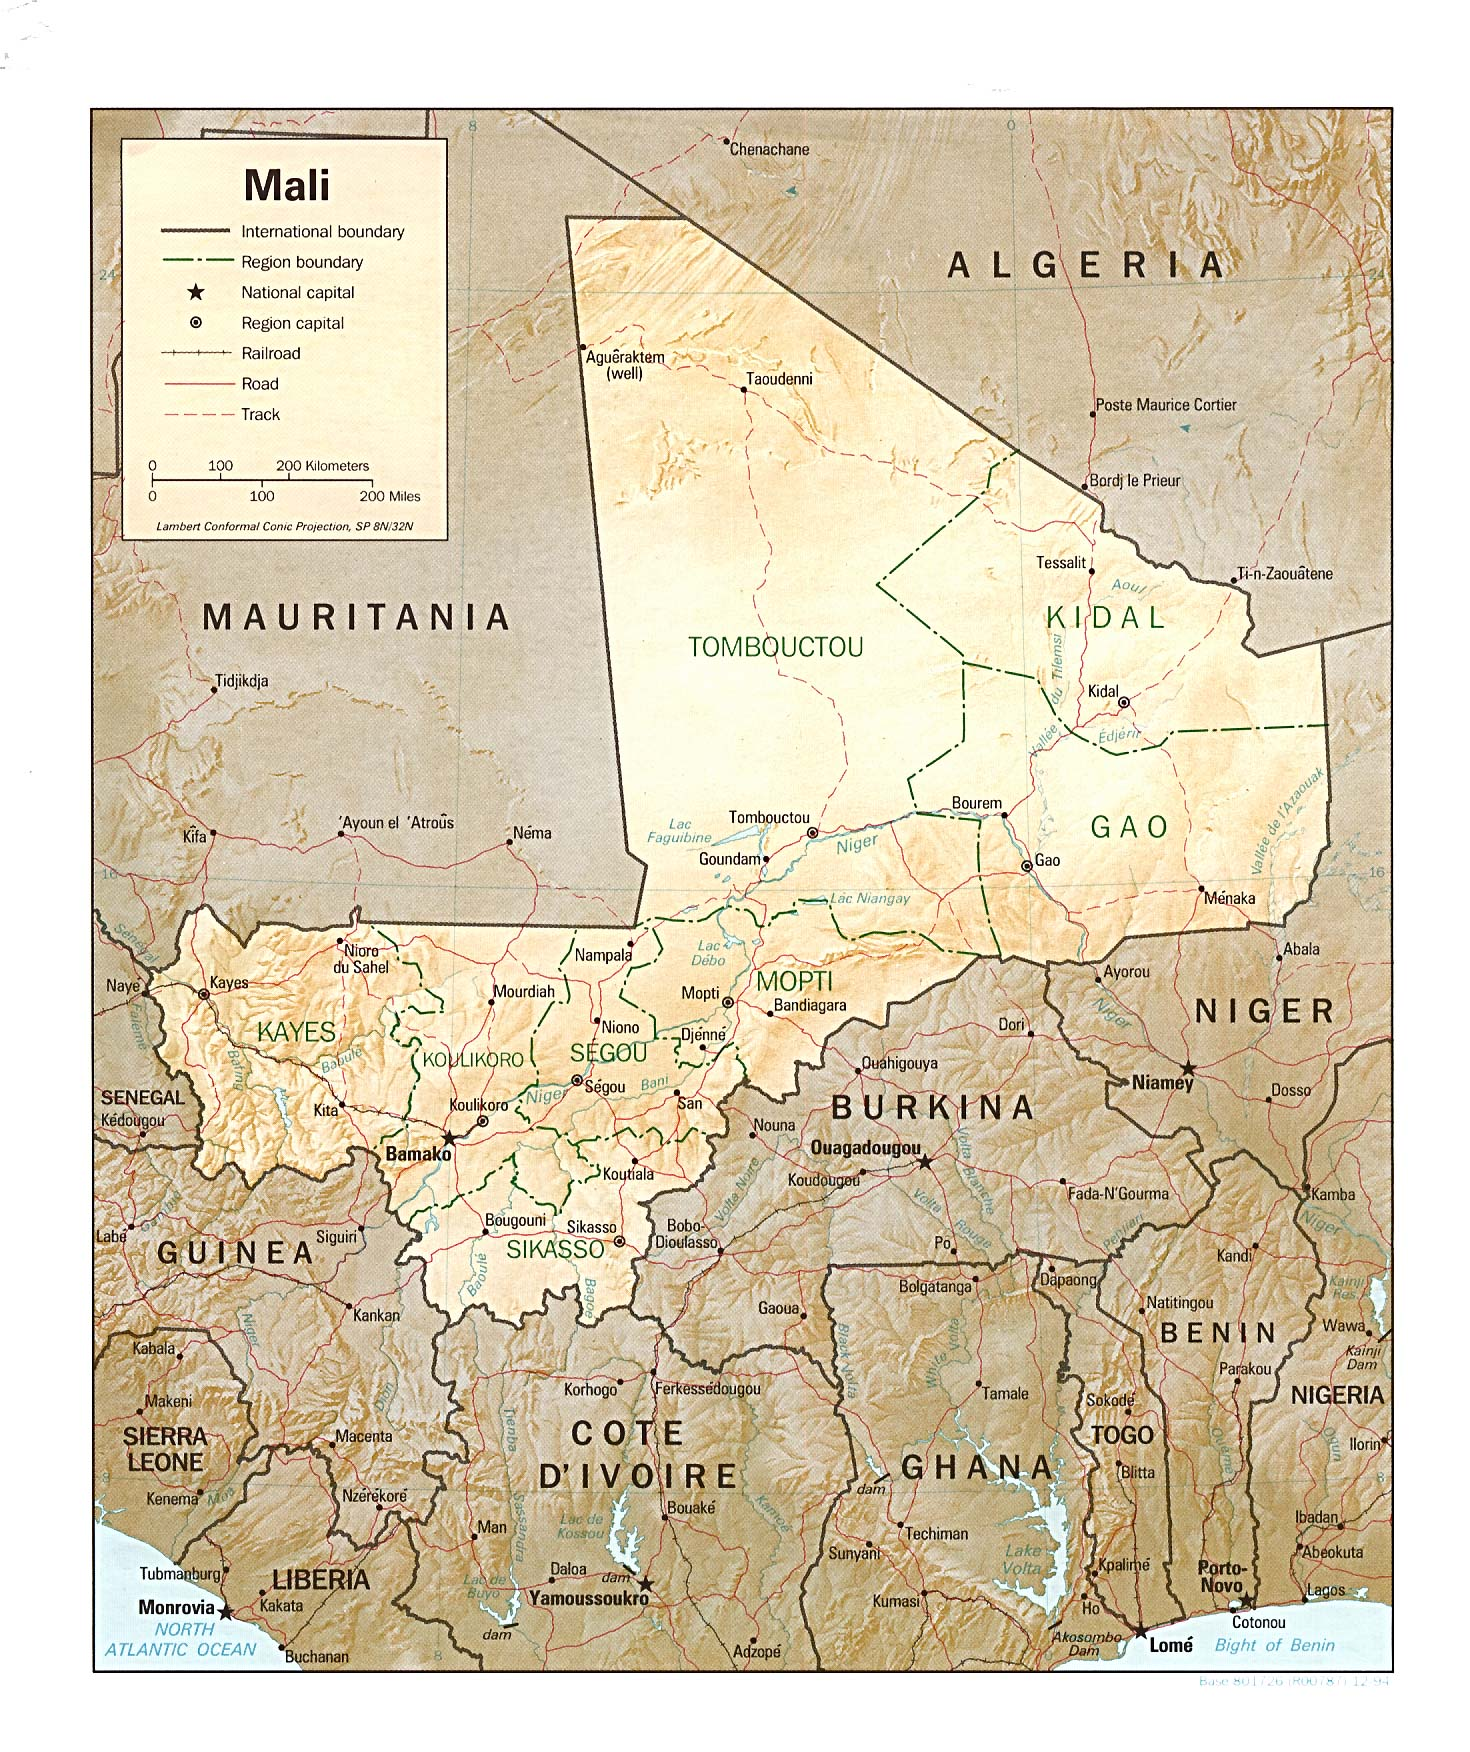 Map Of Mali Mali [Shaded Relief Map] 1994 (554K)